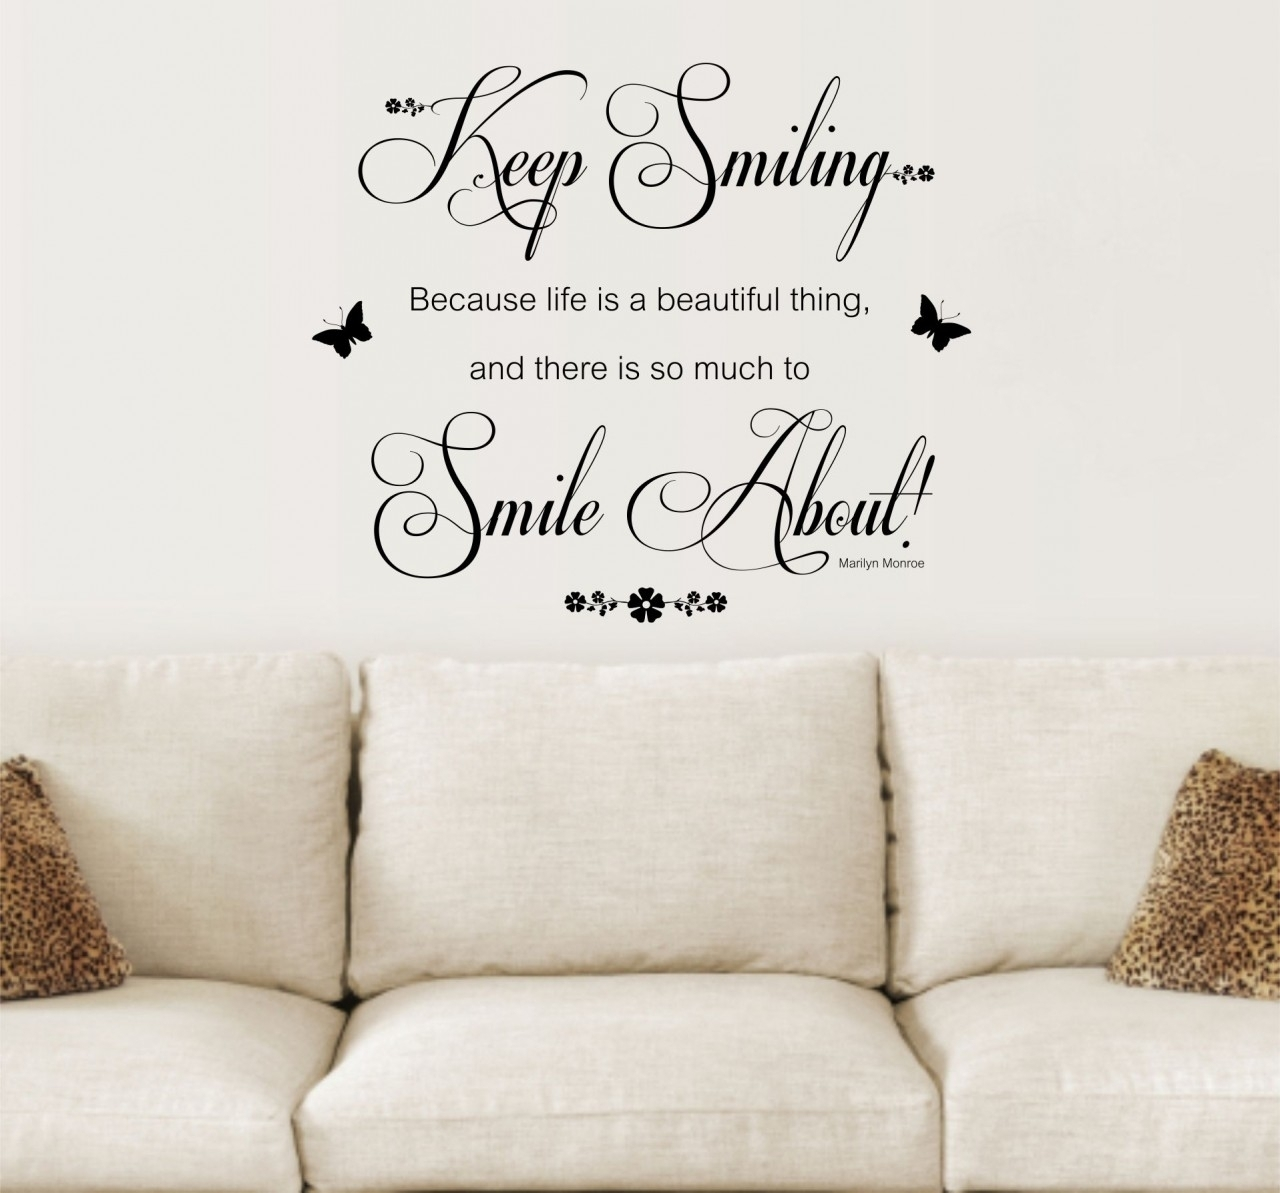 Awesome Home Decor Sayings Walls Gallery | Wall Decoration 2018 In Newest Wall Art Sayings (View 5 of 20)